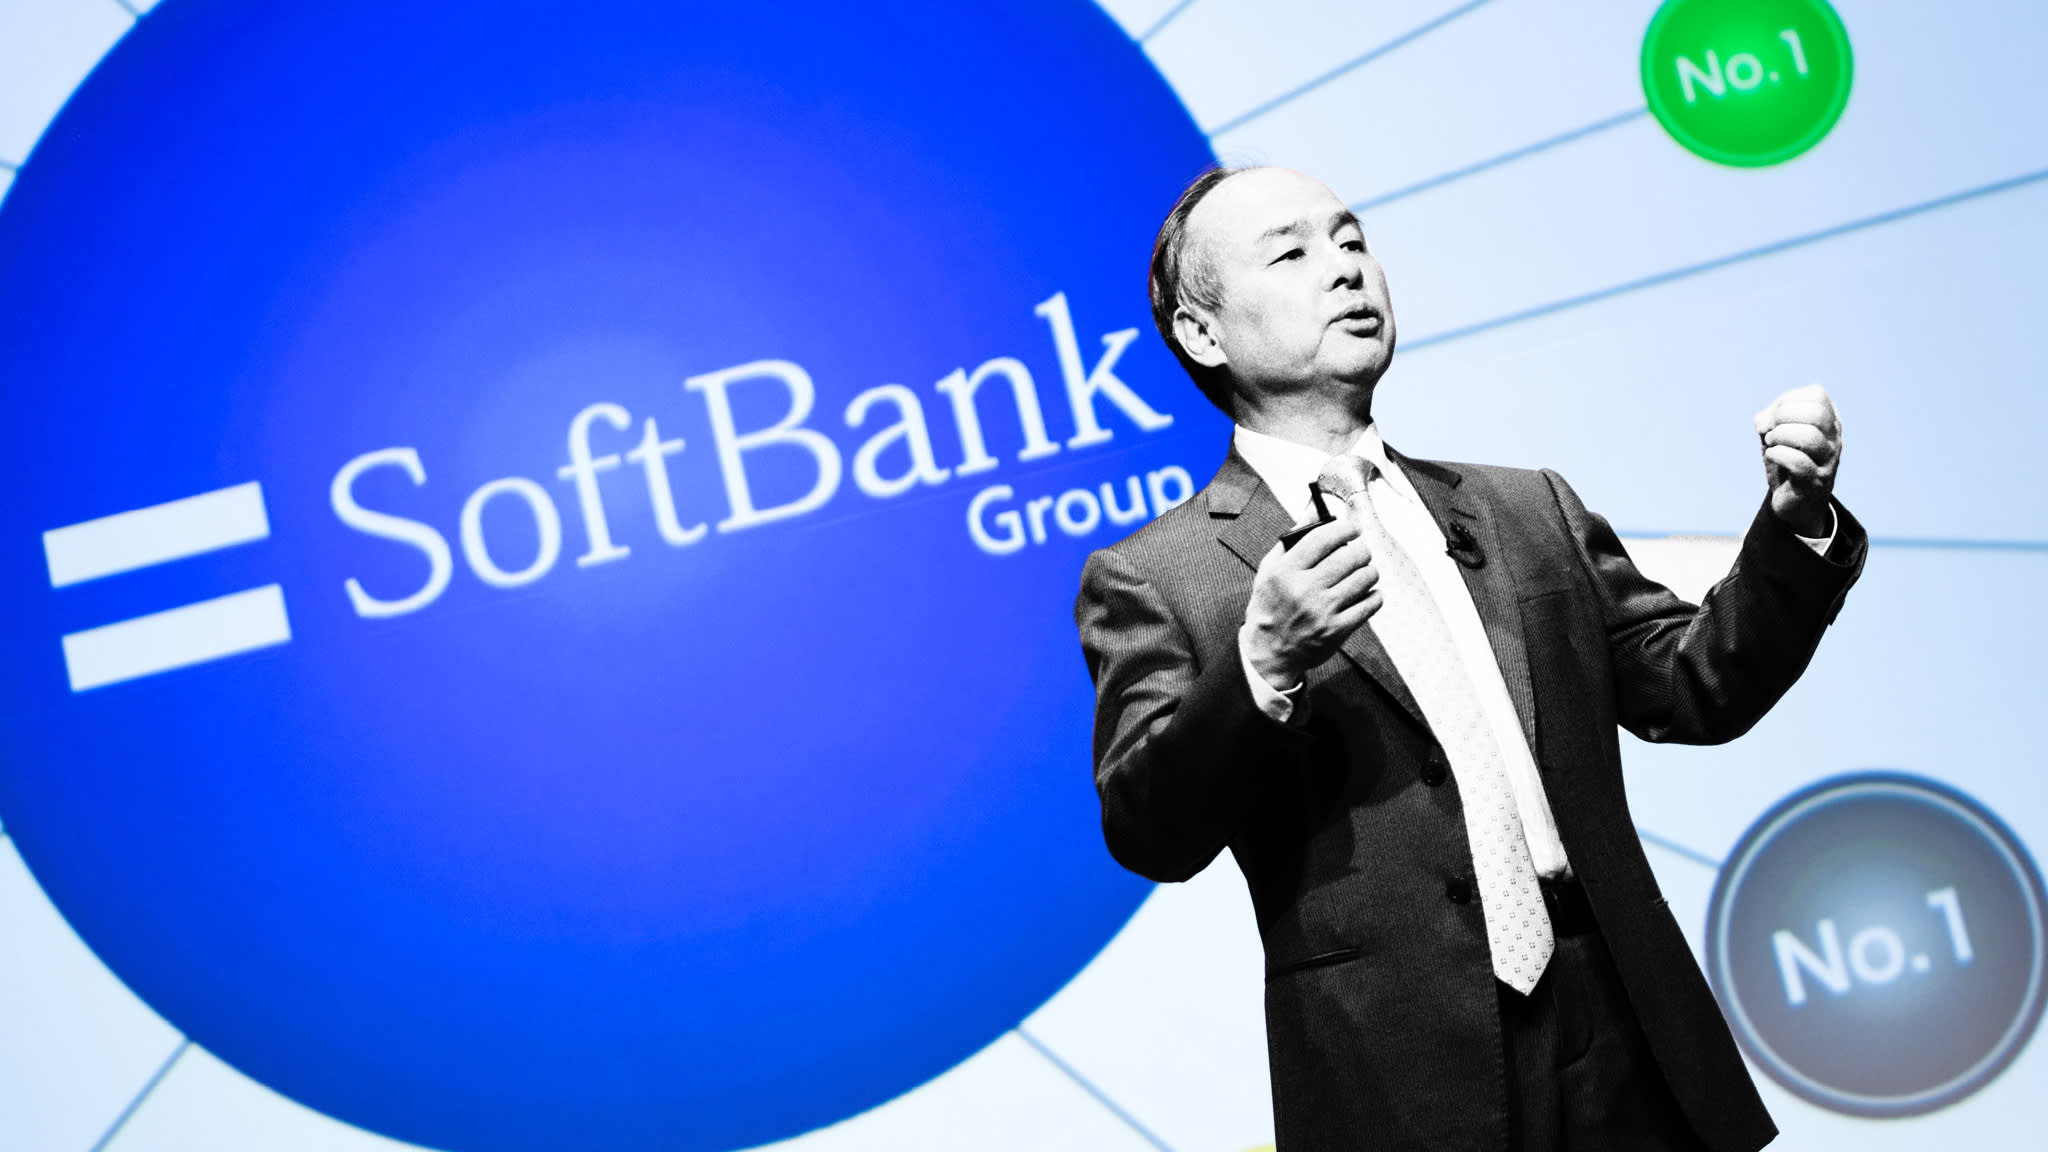 SoftBank's mobile unit listing demonstrates need for reform